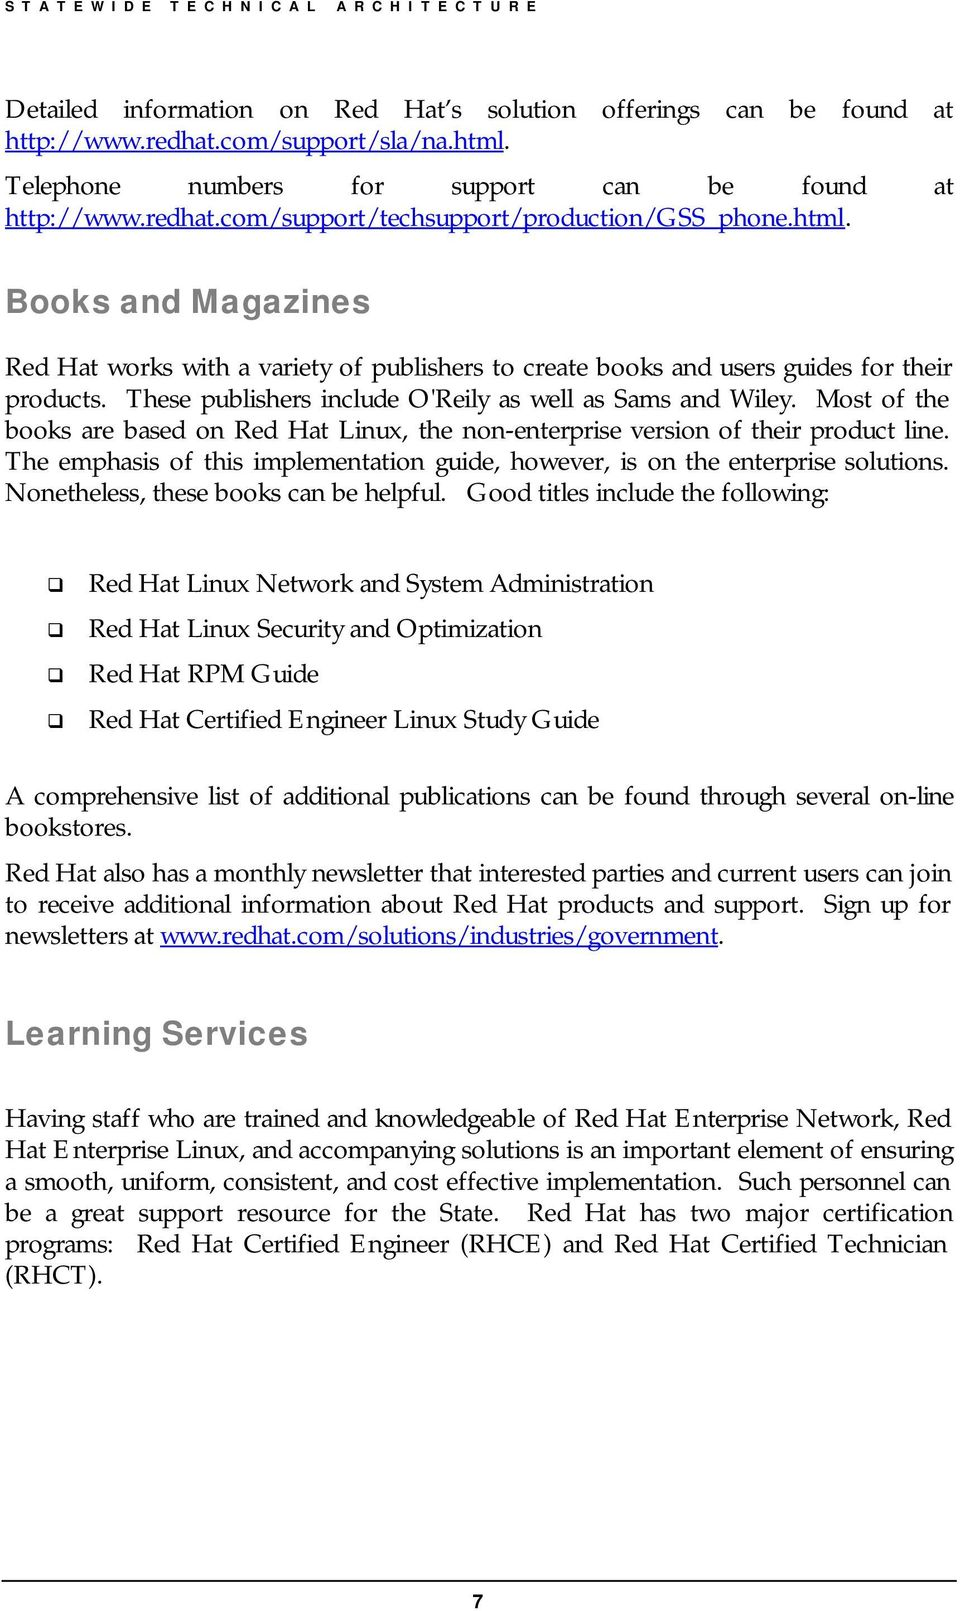 Most of the books are based on Red Hat Linux, the non-enterprise version of their product line. The emphasis of this implementation guide, however, is on the enterprise solutions.